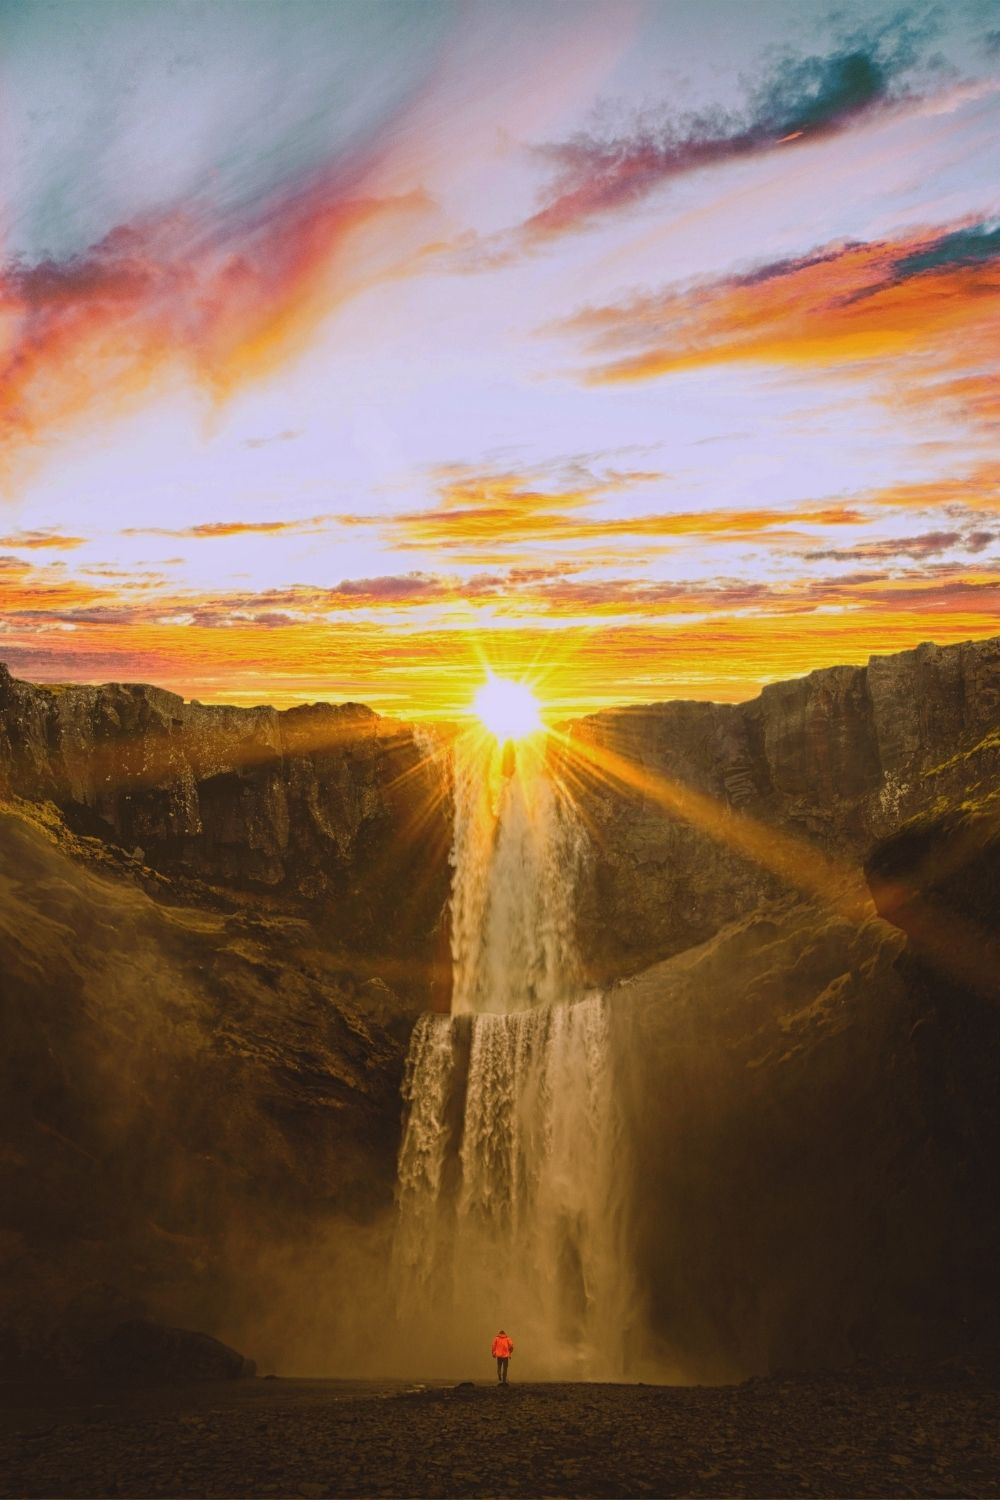 Photo of the sun setting behind giant mountains with a waterfall.